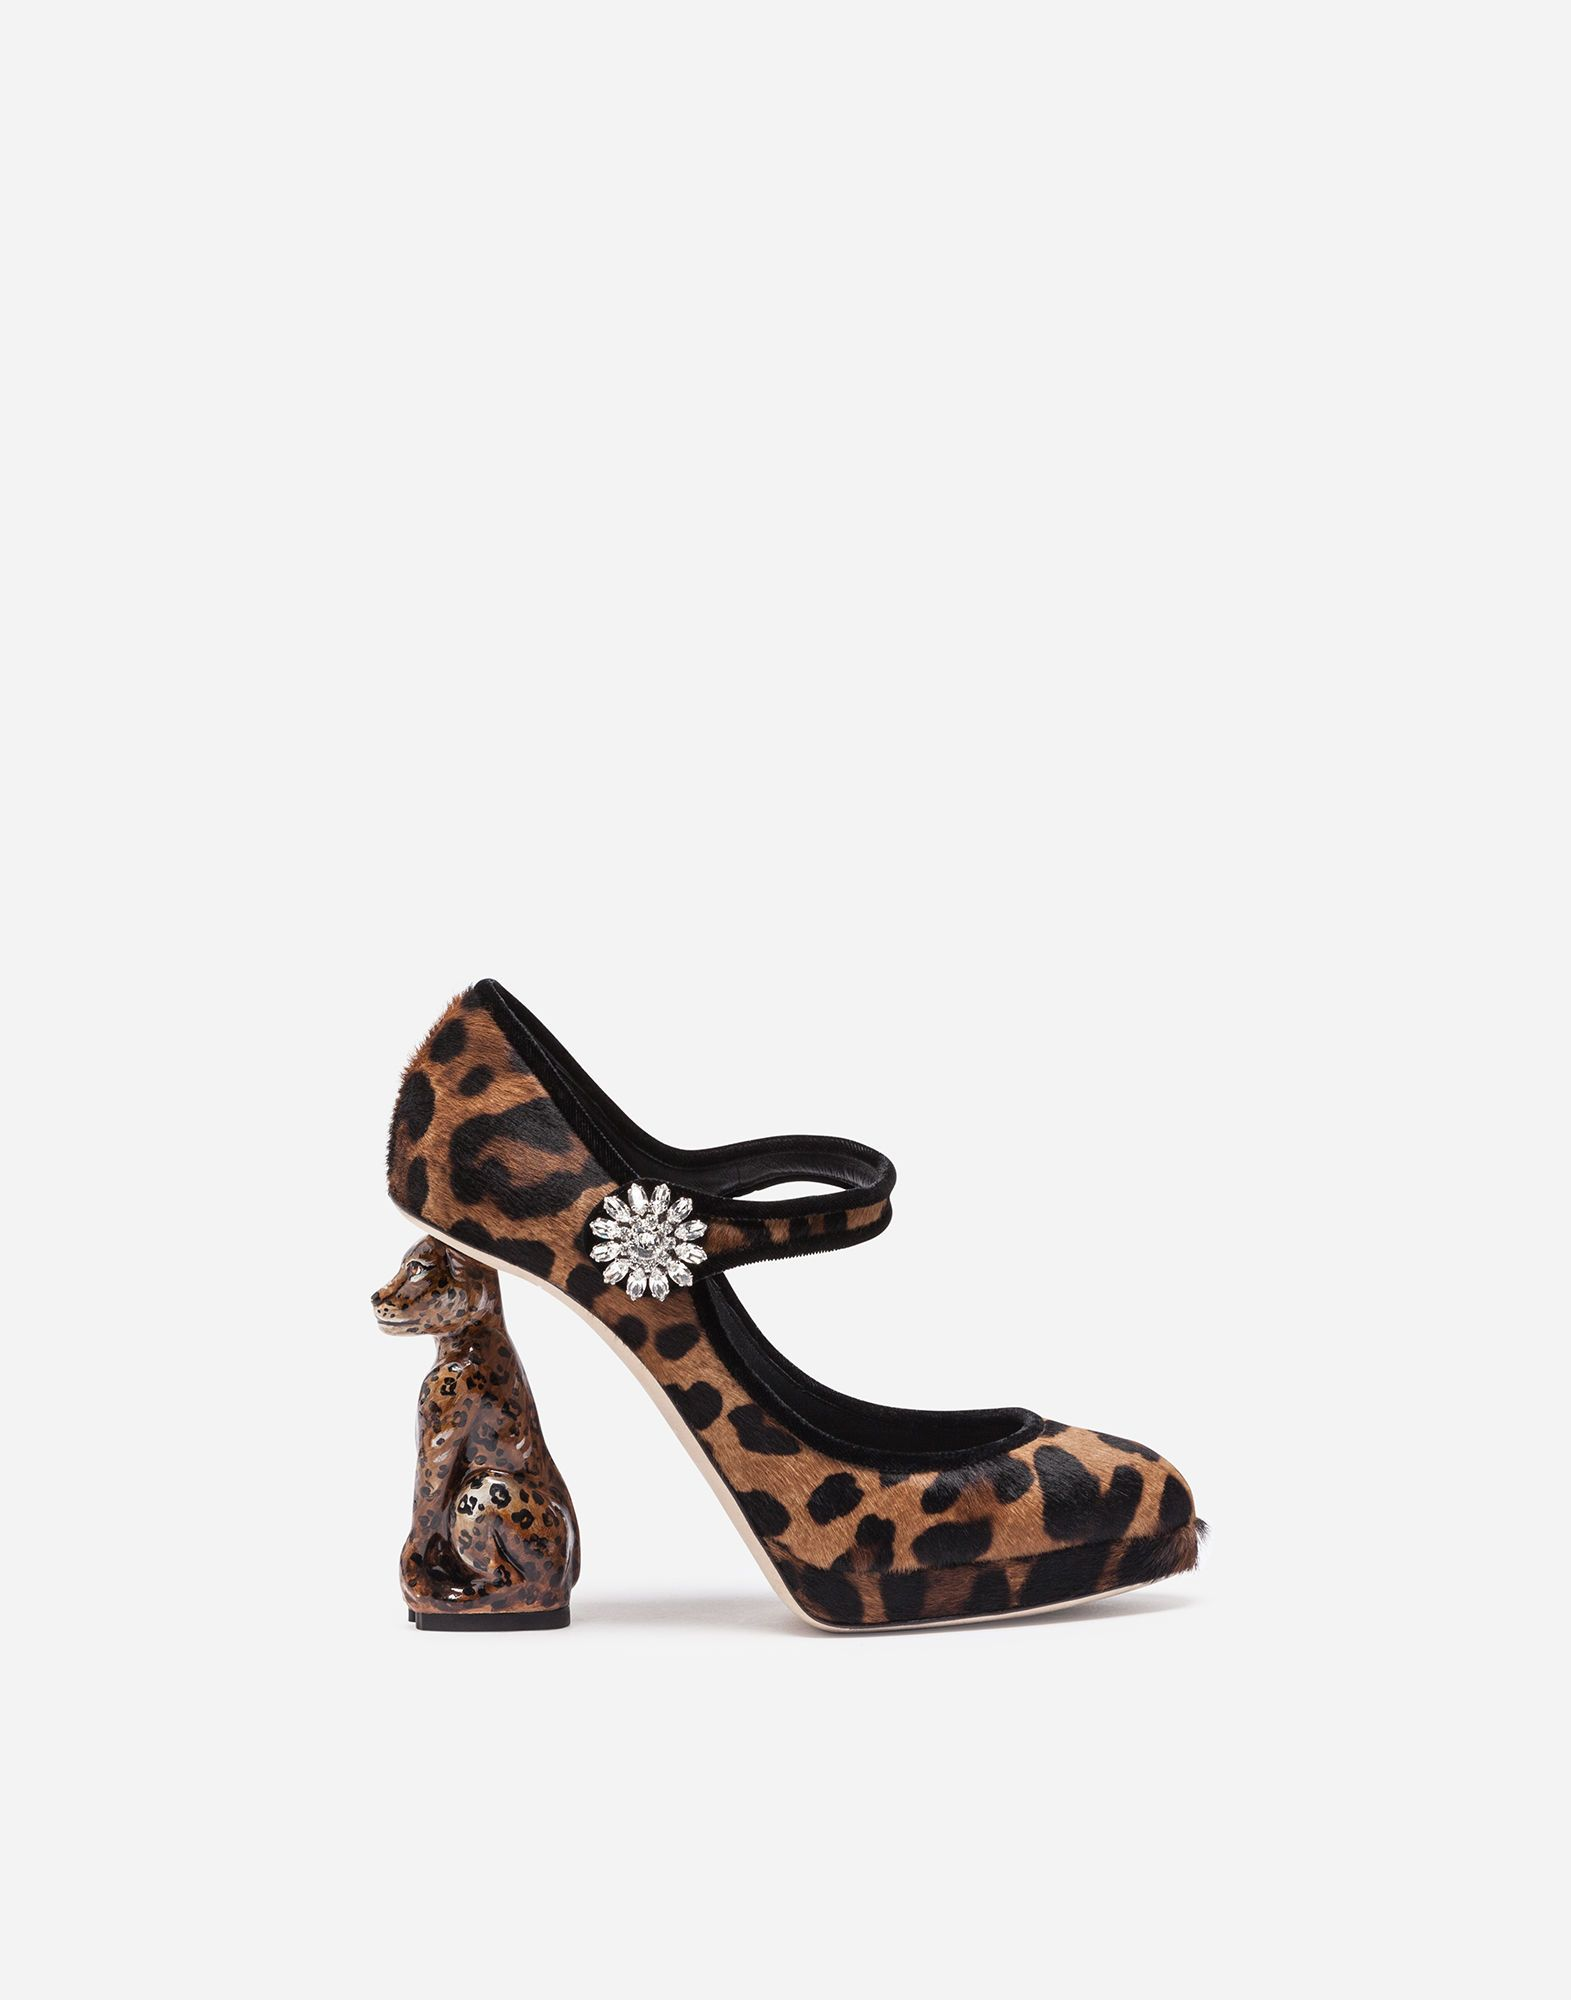 c84b32287d1e9 DOLCE & GABBANA PONY HAIR MARY JANES WITH SCULPTURAL HEEL ...